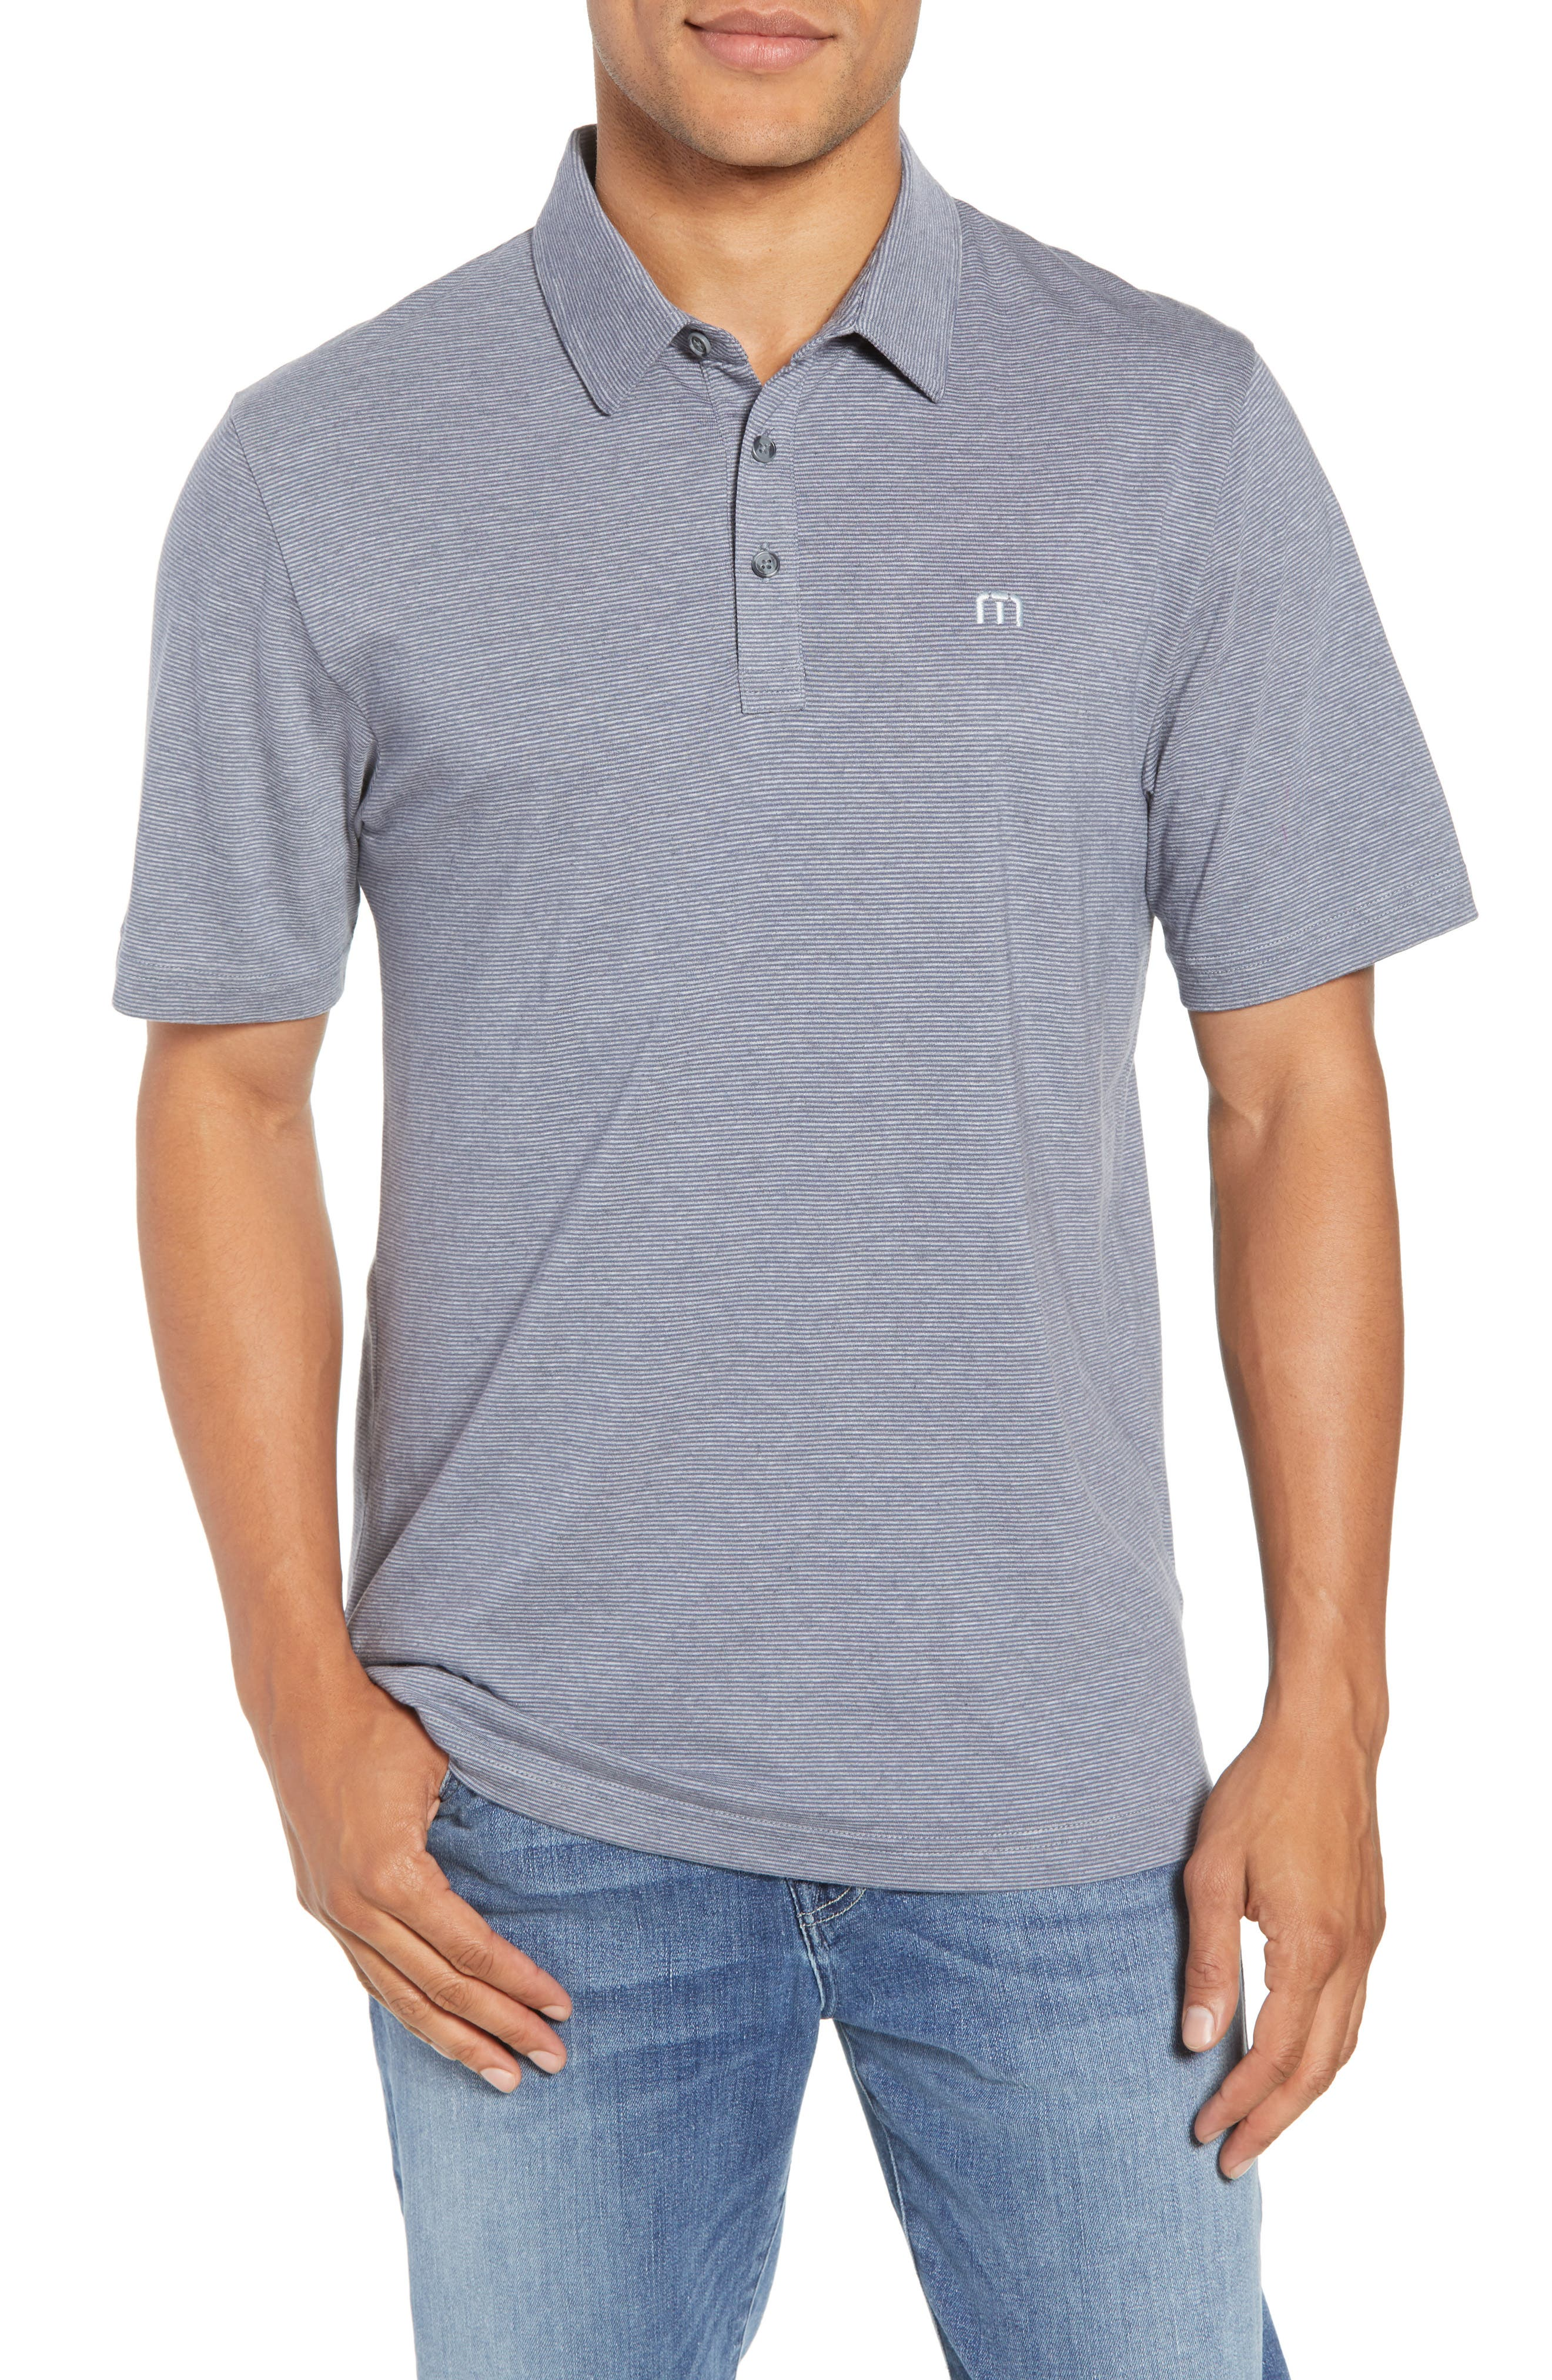 JQ Regular Fit Stripe Polo,                             Main thumbnail 1, color,                             Heather Grisaille